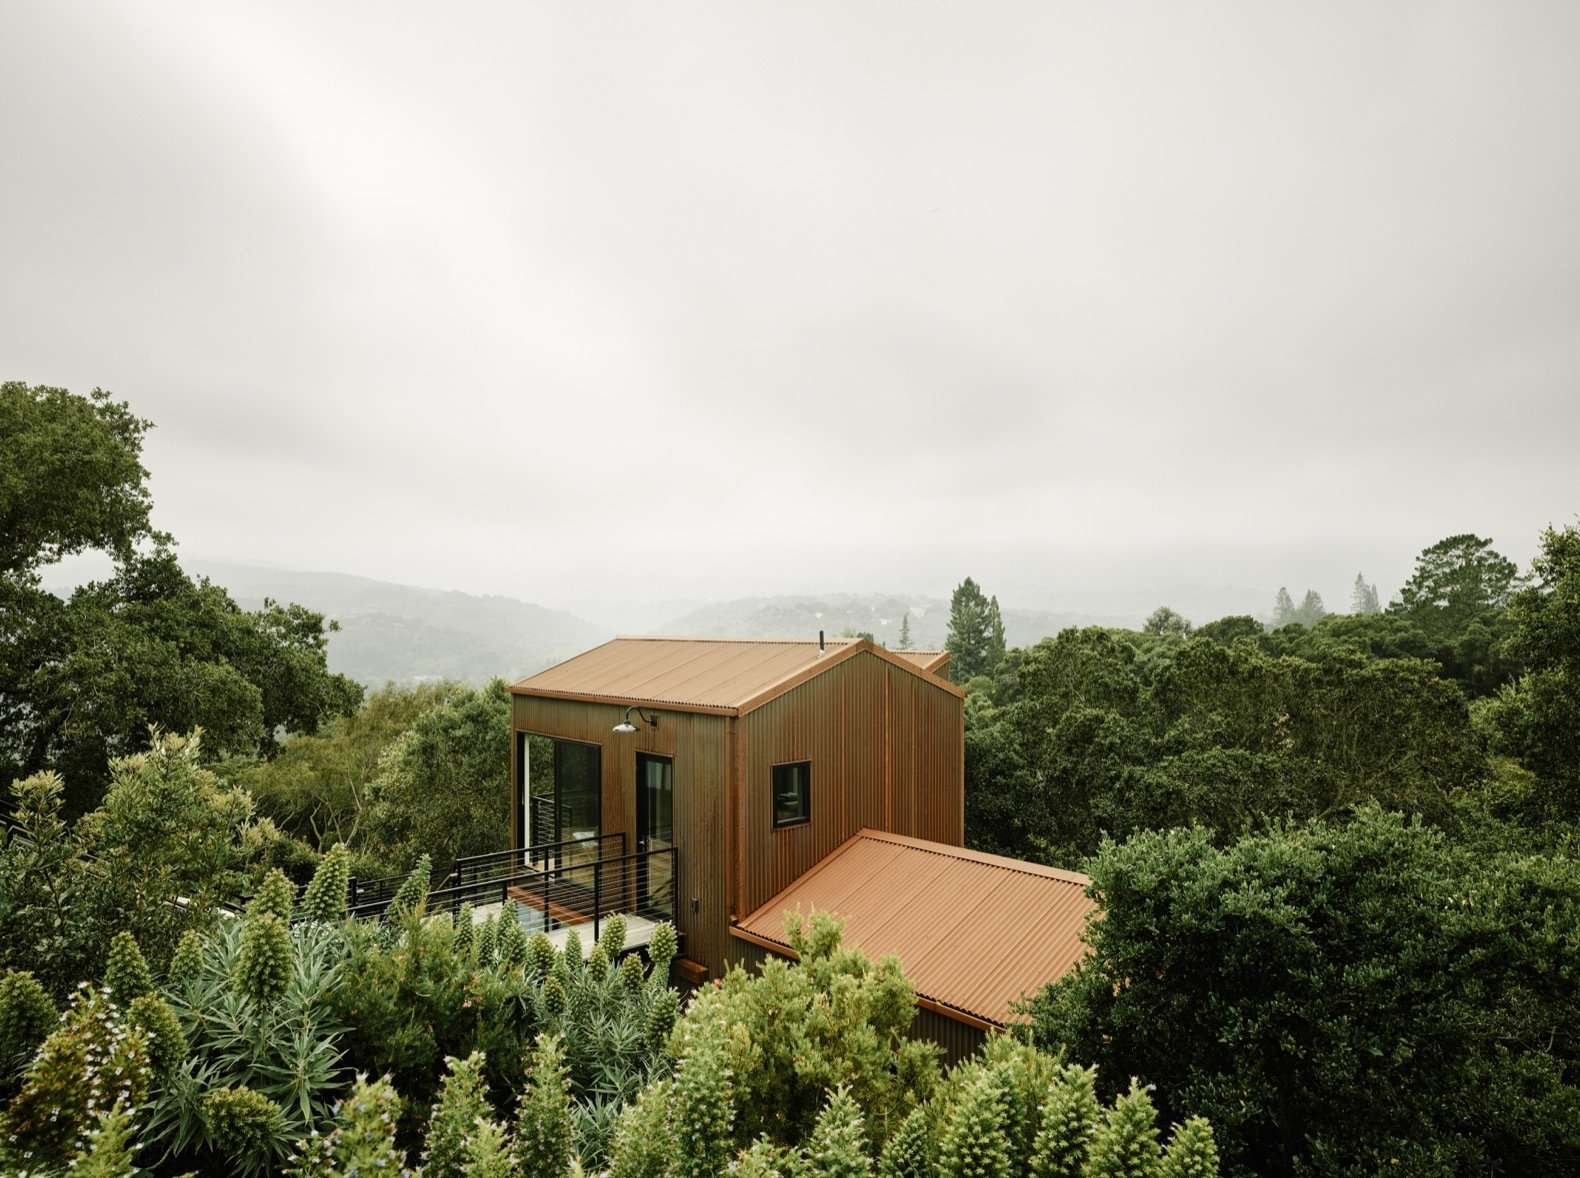 Not only was extra living space necessary for the growing family of four, but the existing house also failed to take advantage of the striking views that drew the couple to the site. The homeowners tapped architect Malcolm Davis of San Francisco–based Malcolm Davis Architecture to redesign and expand the dwelling without damaging the many established oak trees.